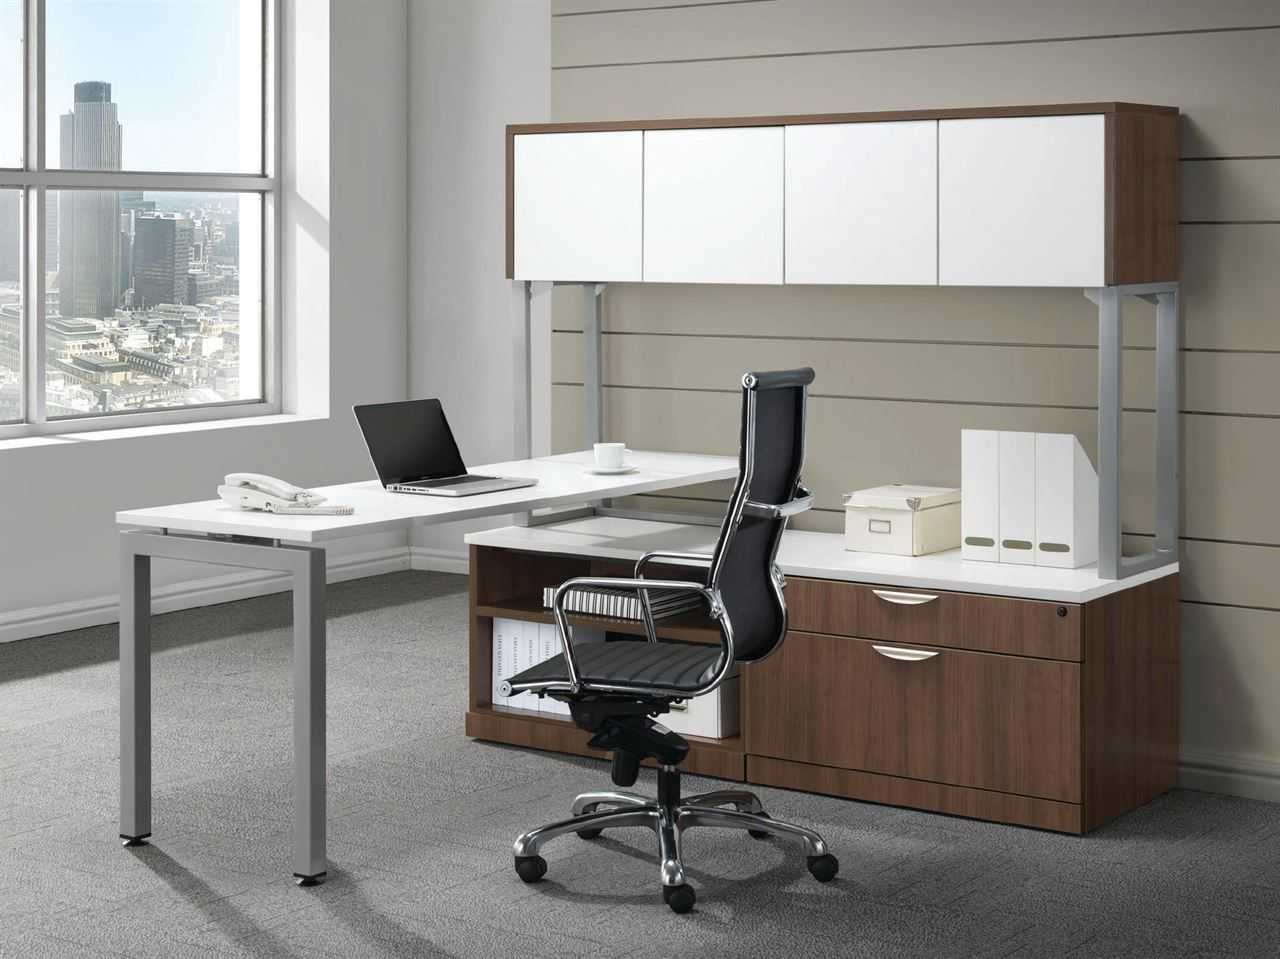 Office Furniture For Home And Business Of4s Is The Leading